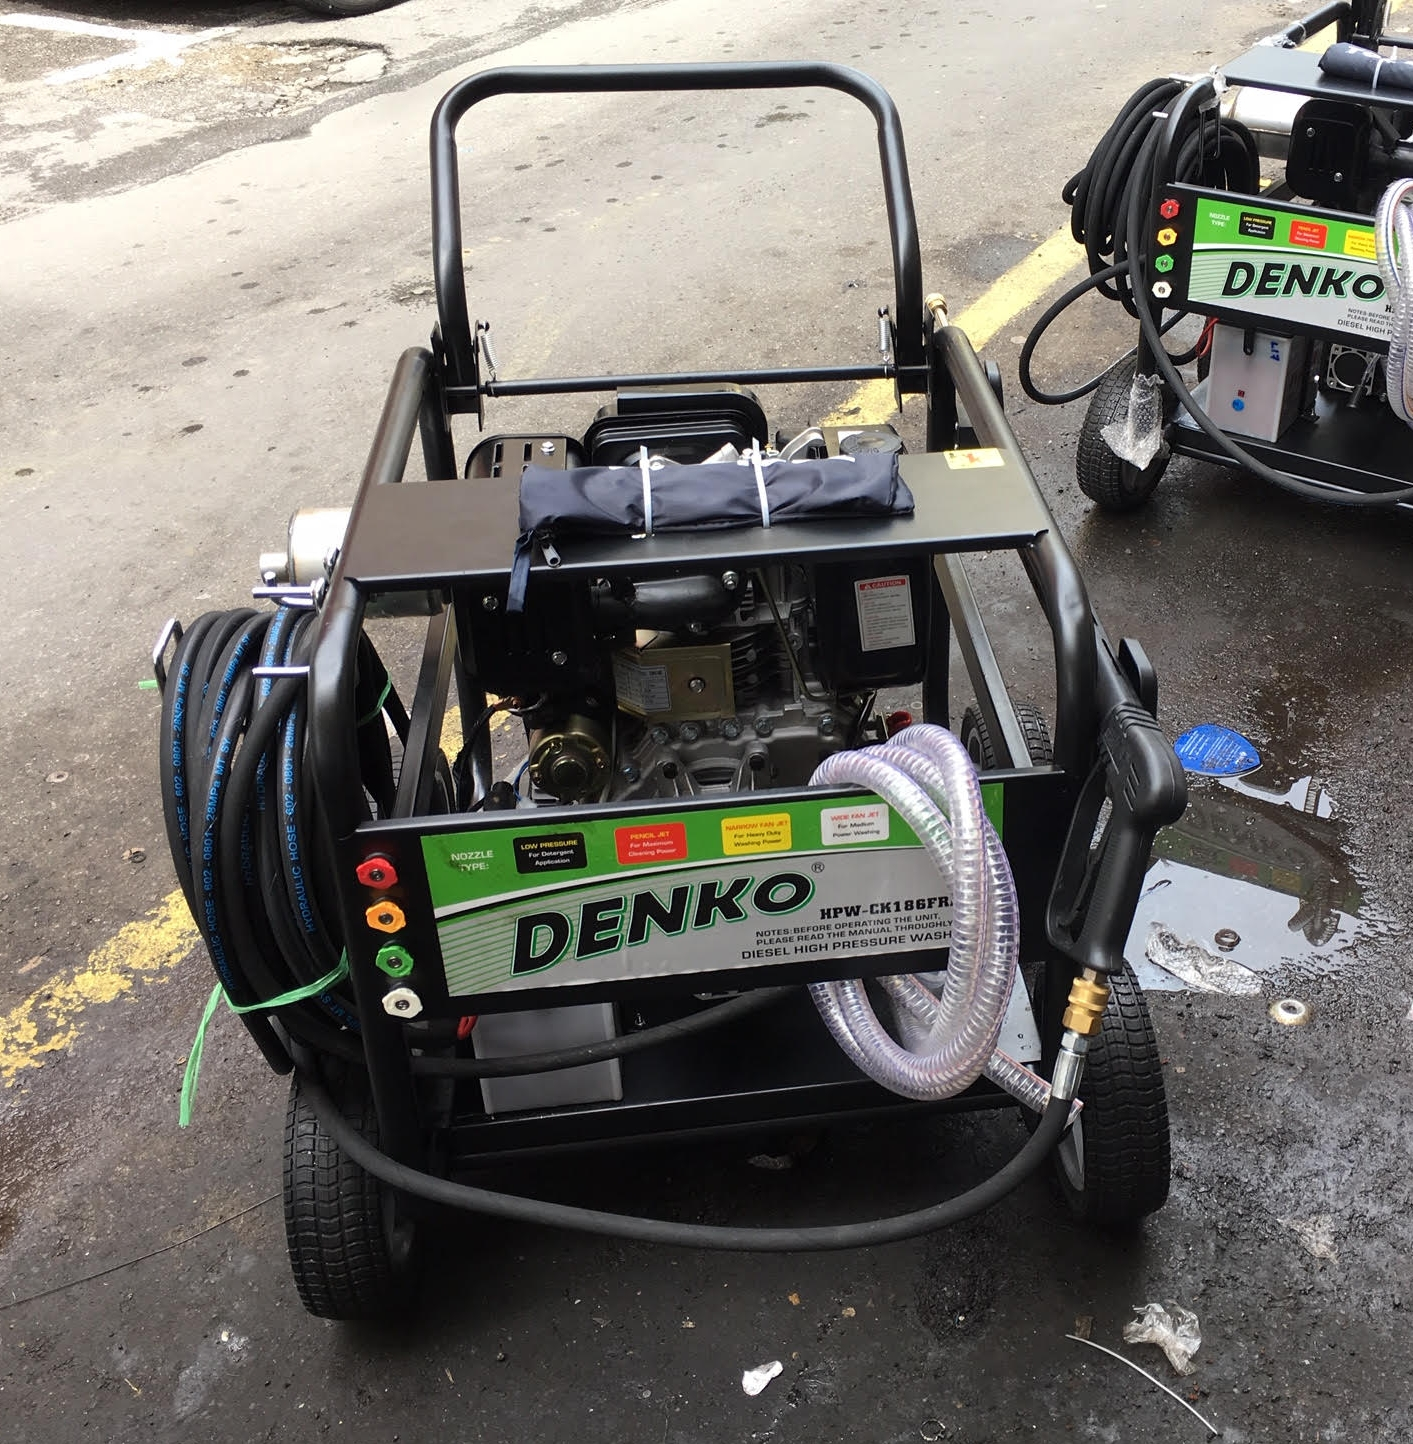 A Denko HPW-CK186FRE high pressure washer (3600psi) , suitable for heavy duty use such as on oil platforms.